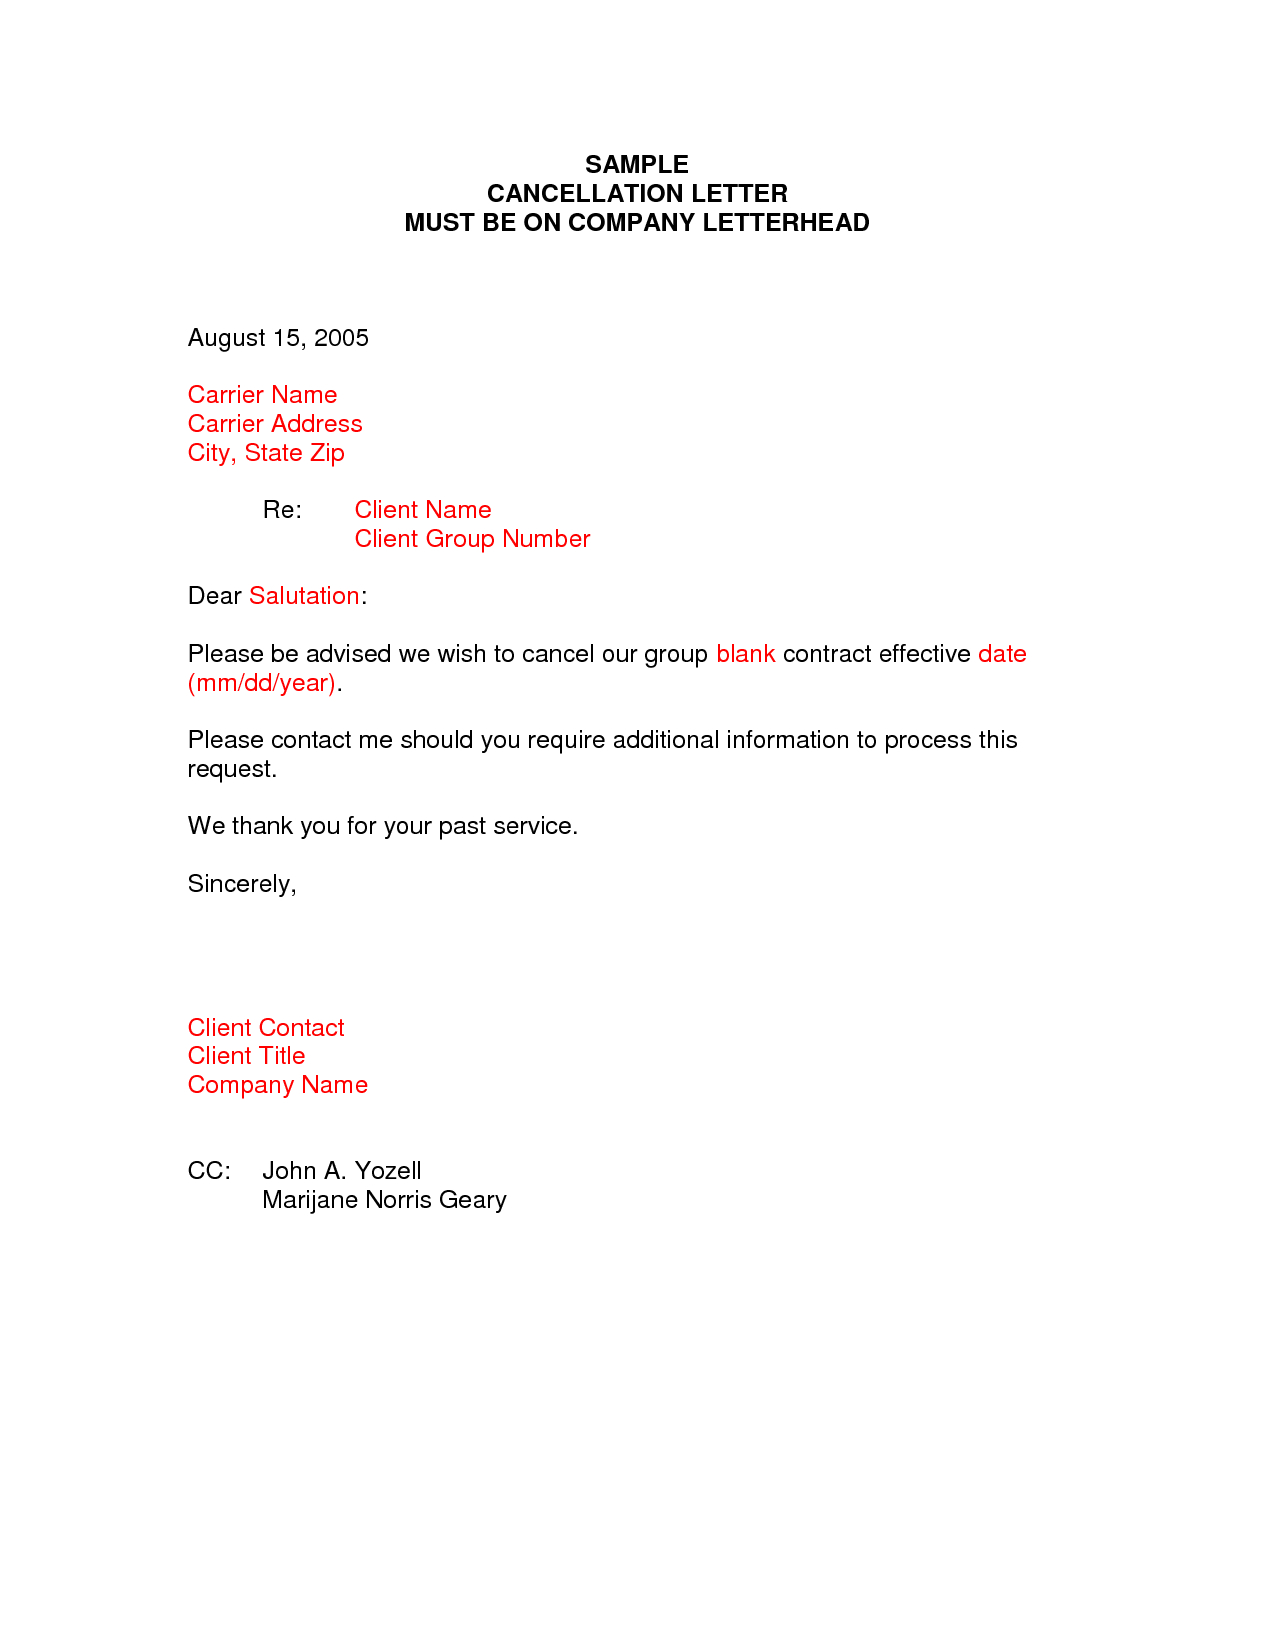 Employee Termination Letter Template Free - Sample Termination Letter format Business Case Examples Free Cover